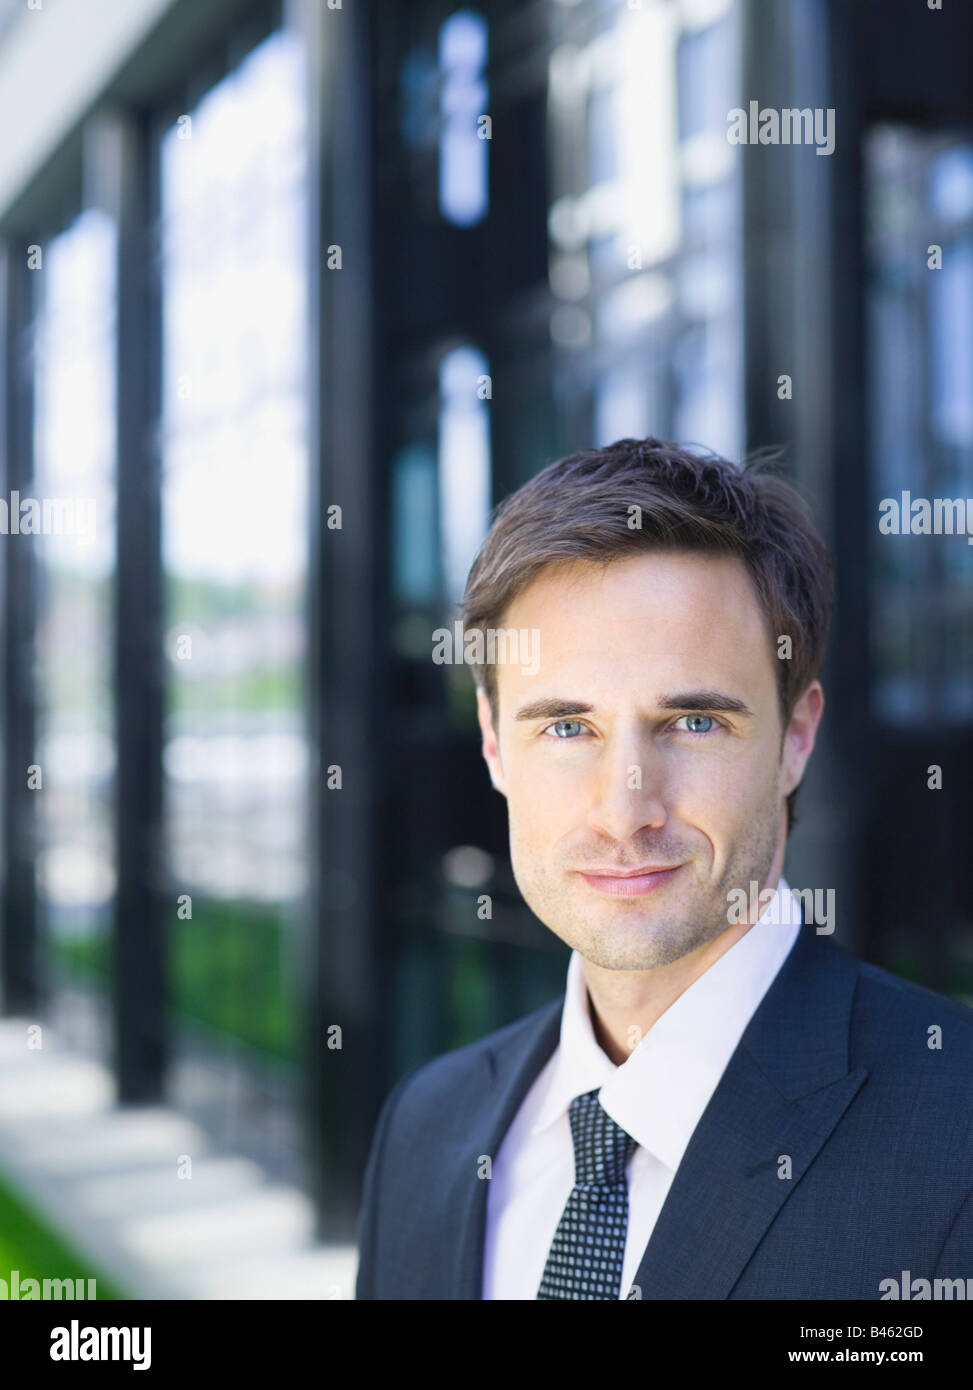 Germany, Baden-Württemberg, Stuttgart, Businessman, portrait - Stock Image